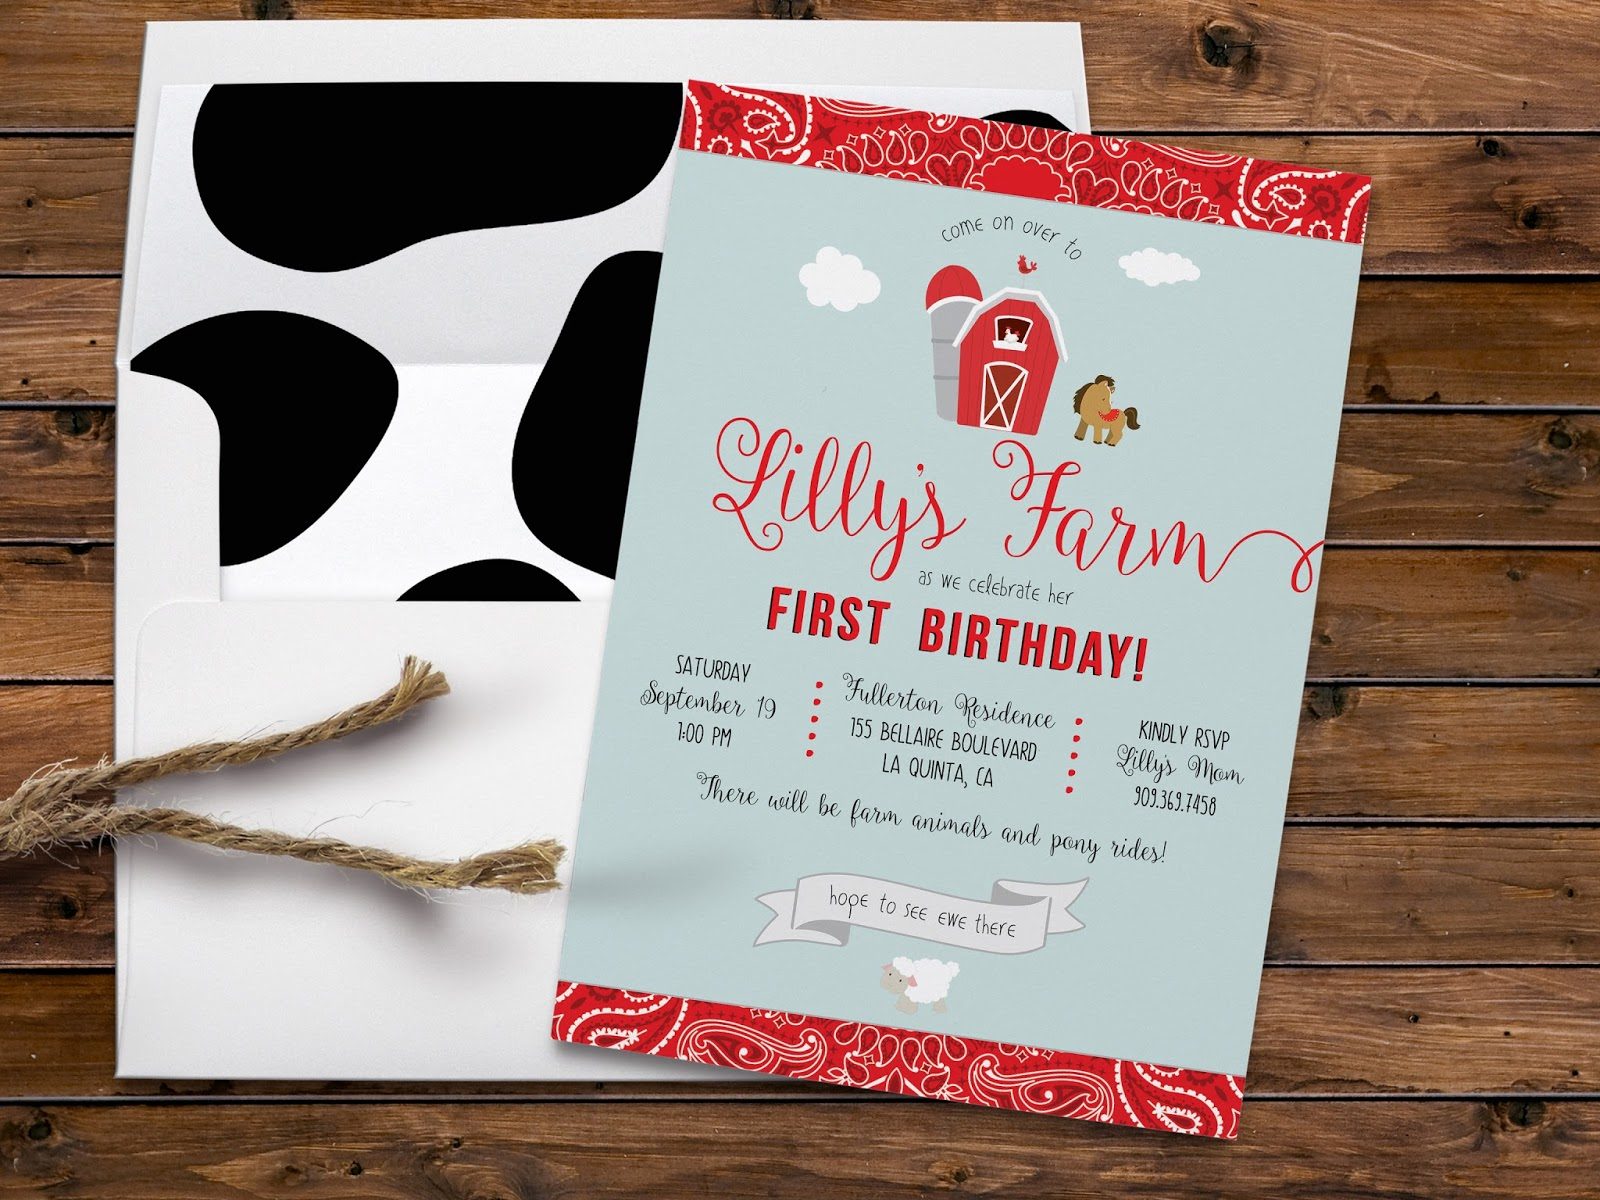 Pixels to paper printables birth announcements save the date cards calendars party invitations stationery menus wedding timeline cards wine bottle labels gift tagse stopboris Choice Image